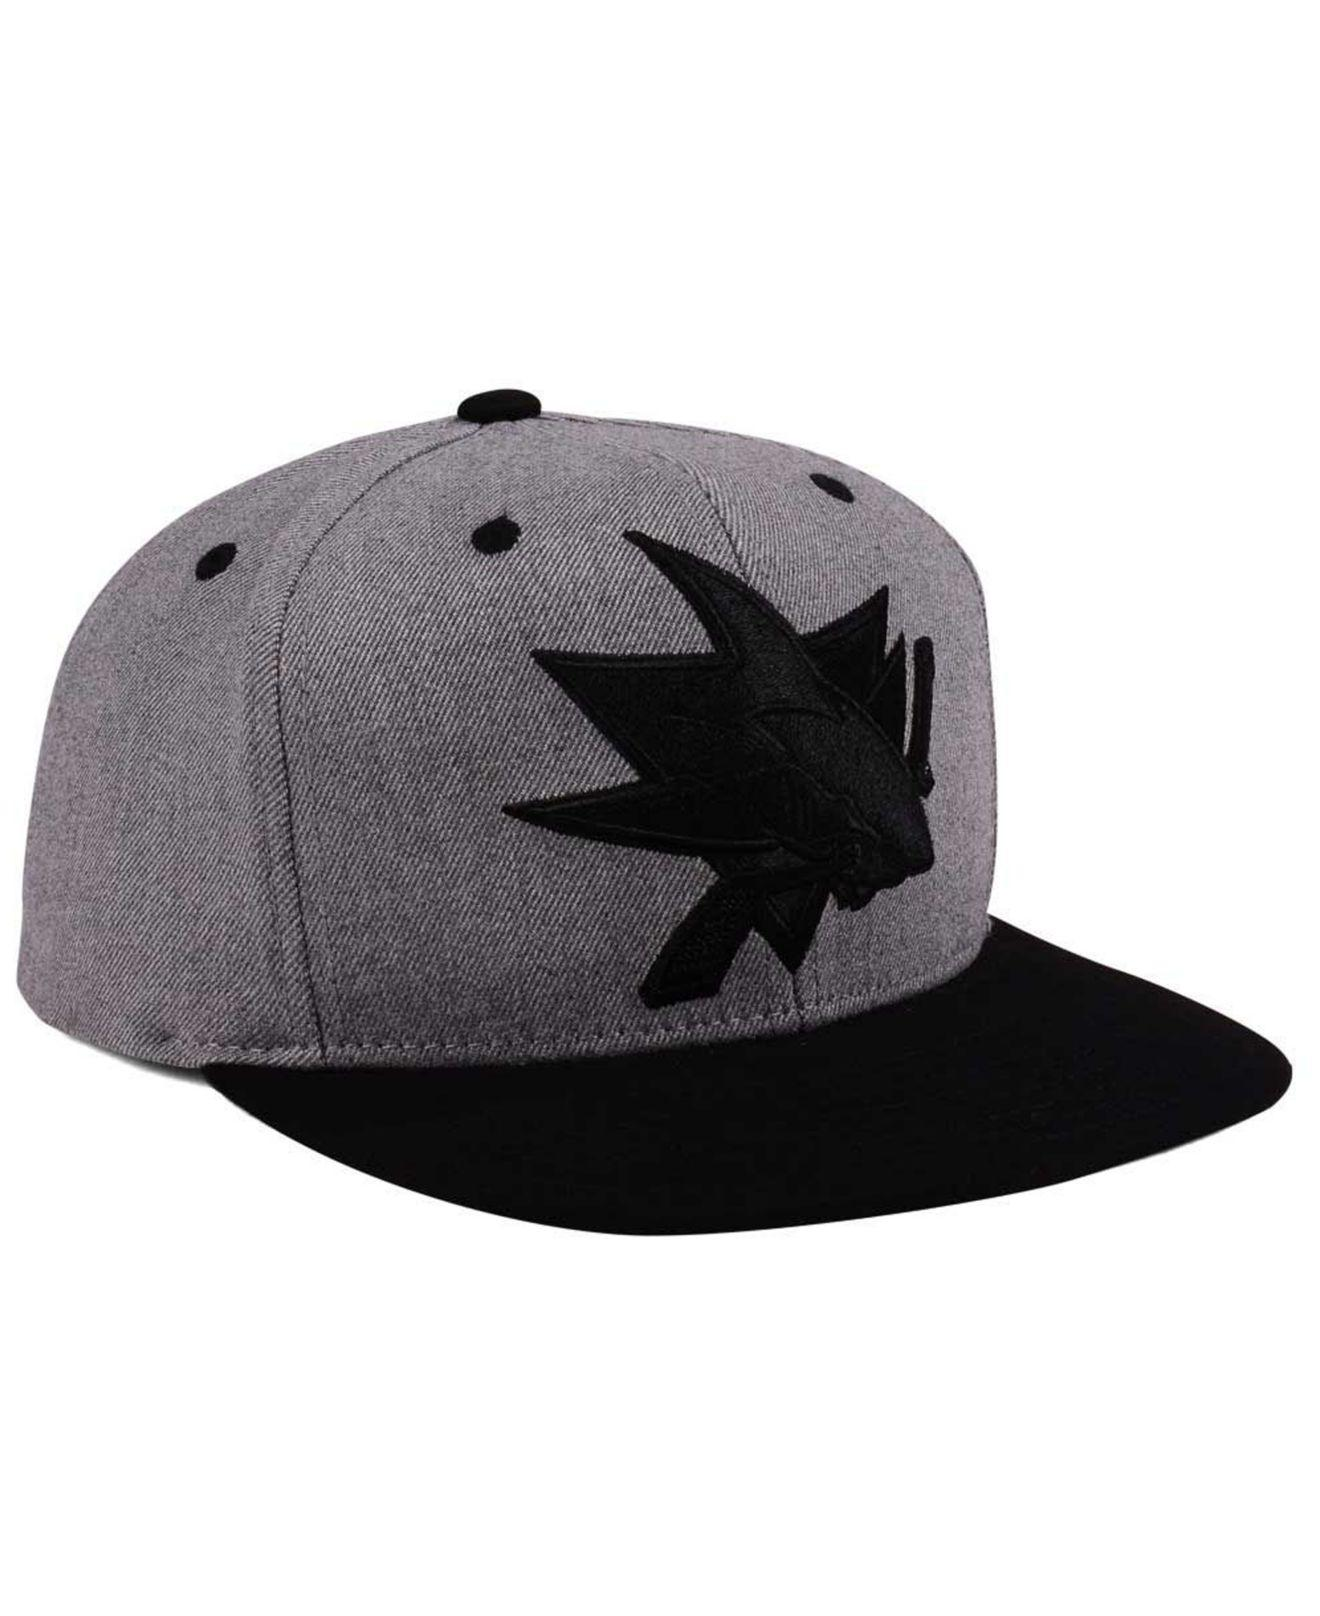 finest selection 6de03 0d424 ... italy lyst adidas san jose sharks 2 tone tonal snapback cap in black  for men 90641